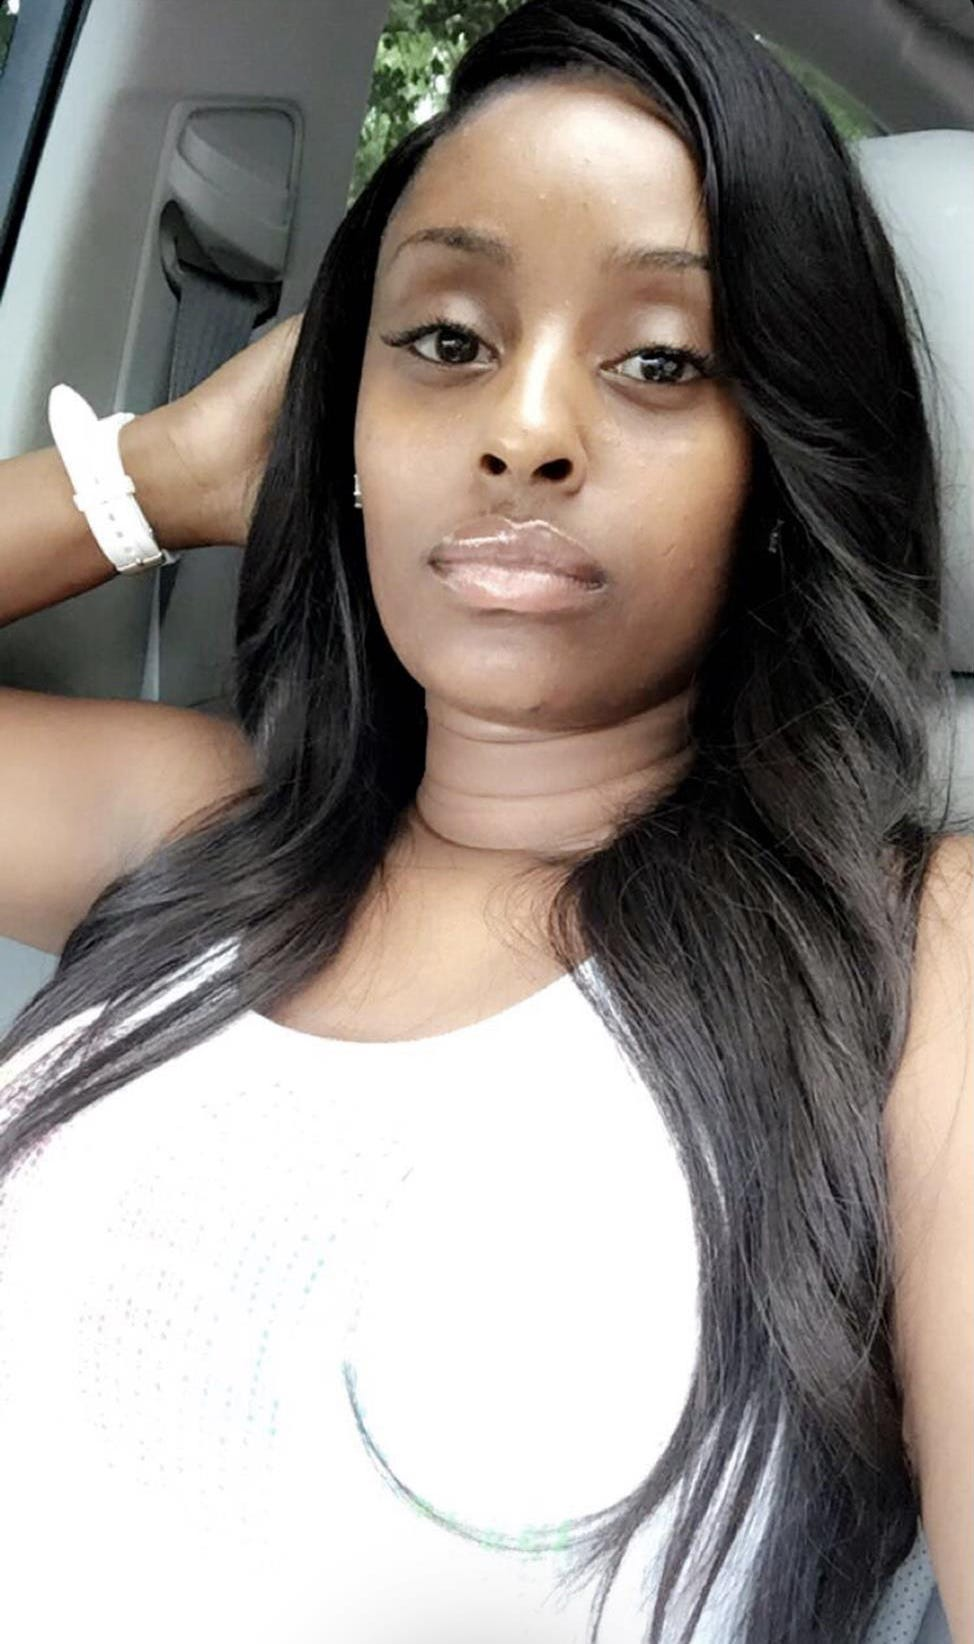 Ranika Hall, a 25-year-old mother and former nursing student from Missouri, wanted to someday open her own home healthcare business. She died after undergoing a Brazilian butt lift operation in a Hialeah, FL clinic in 2017 when her surgeon injected her own body fat so deep in a muscle, it tore veins and allowed the fat to enter her bloodstream, autopsy records and experts said.